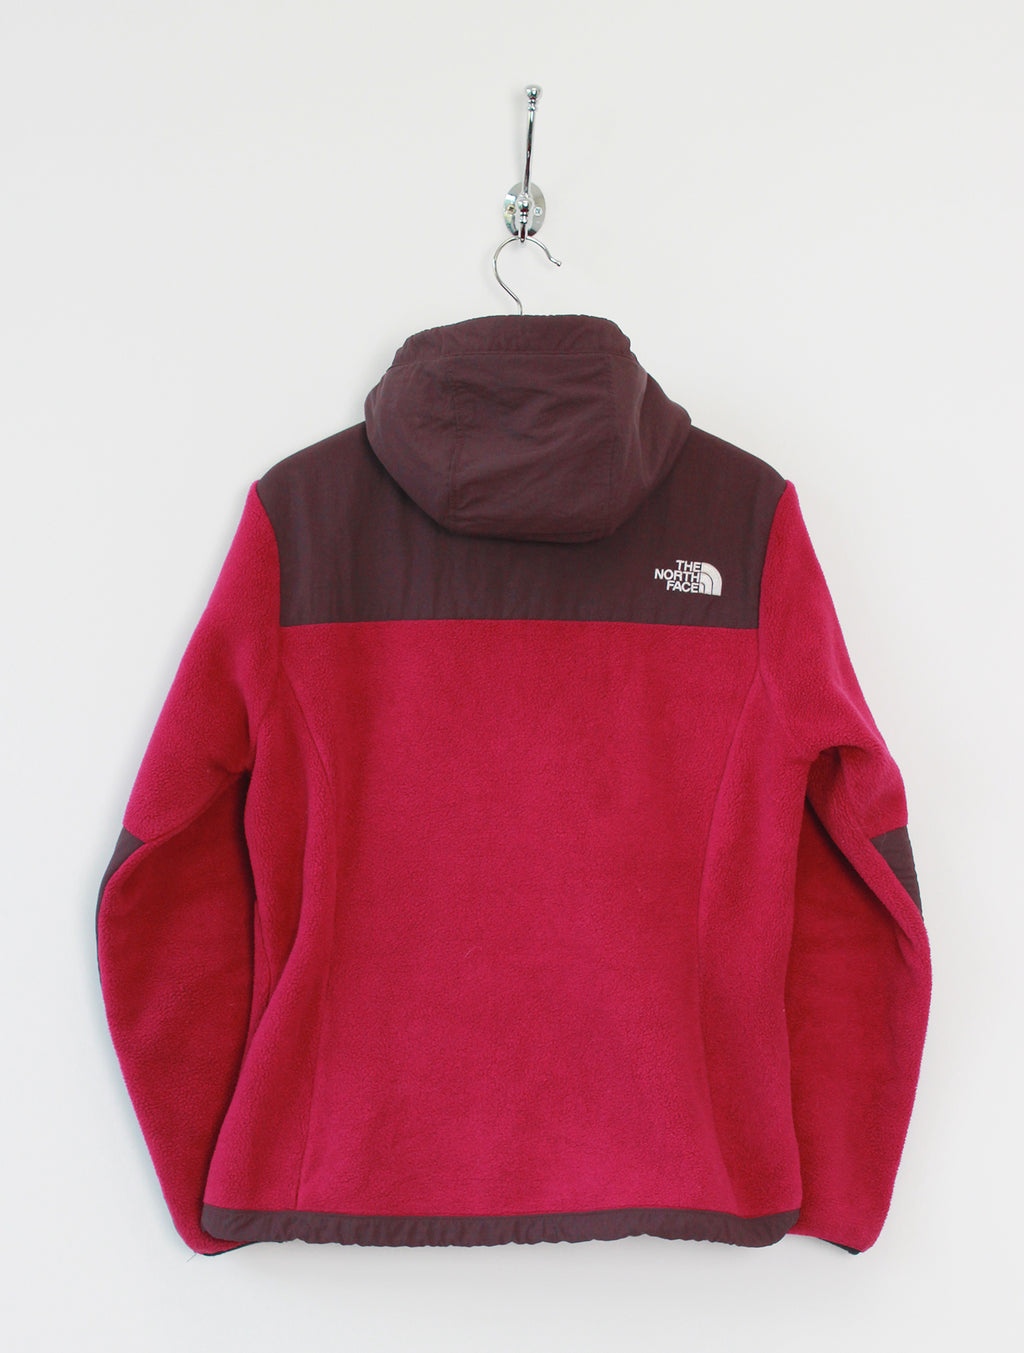 The North Face Denali Fleece Hoodie (M)